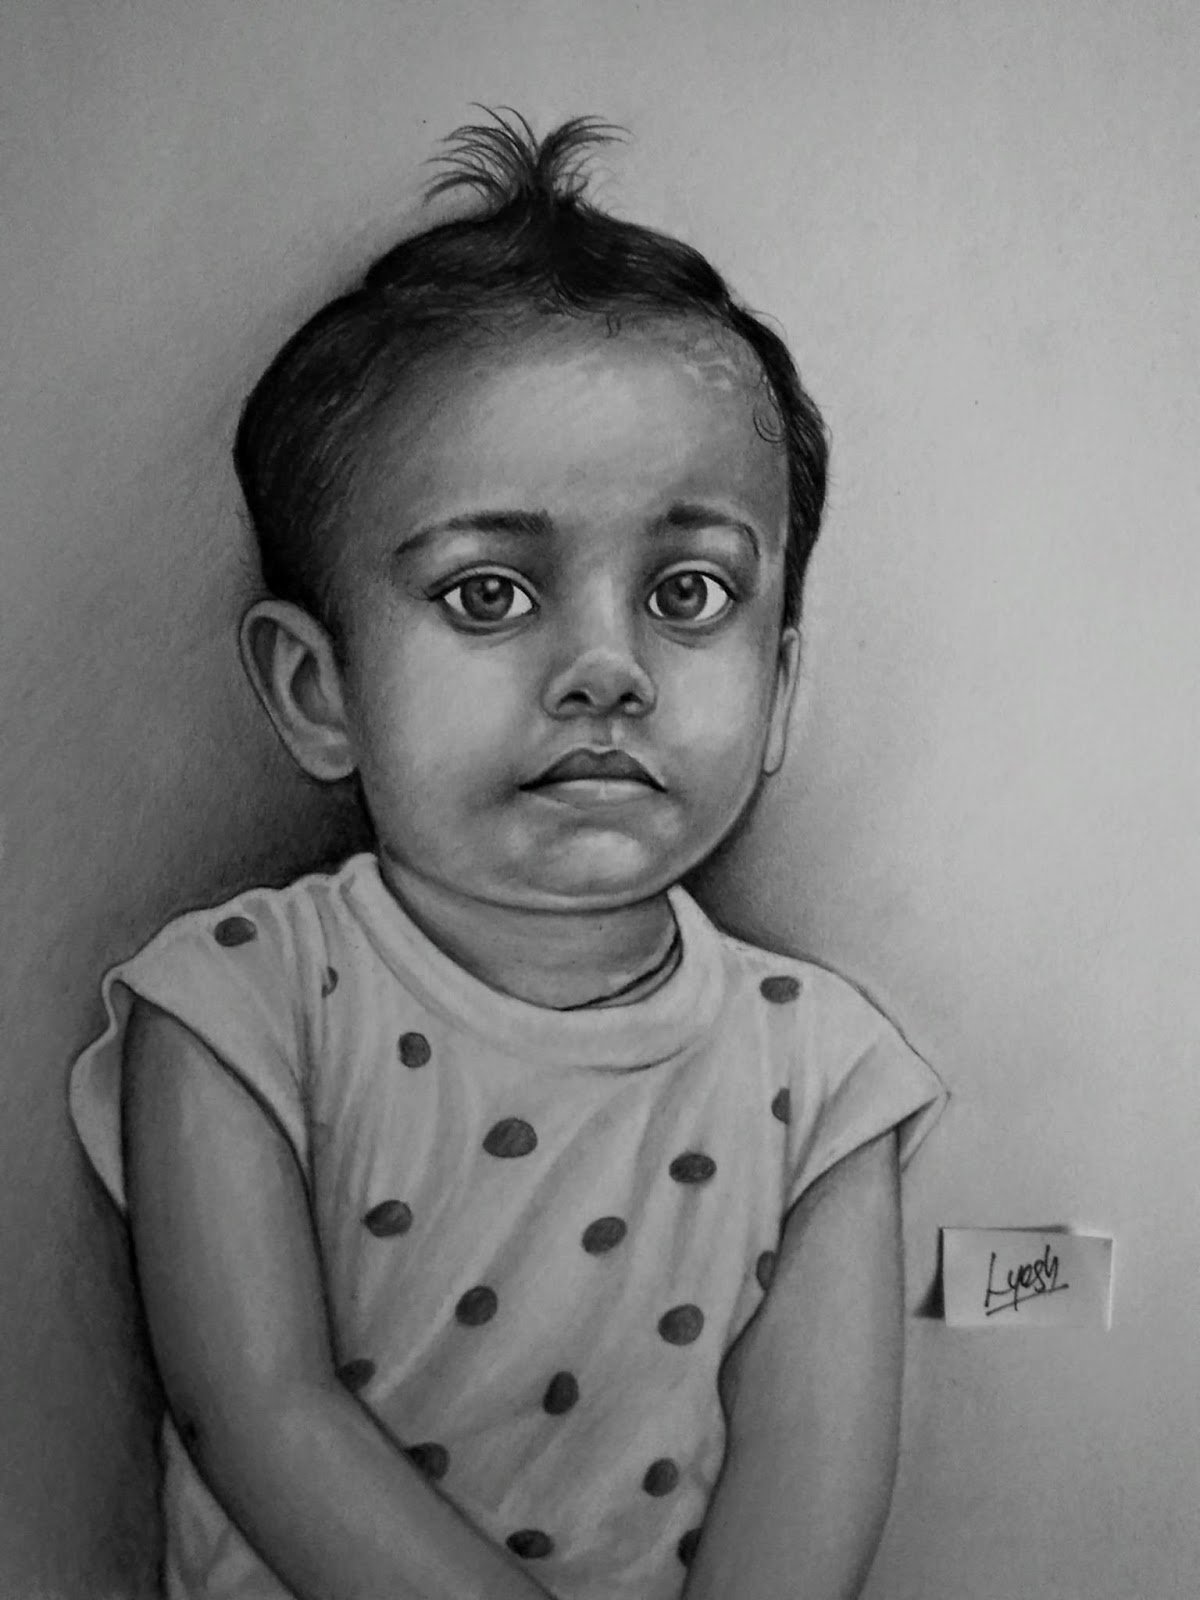 pencil drawing of a baby